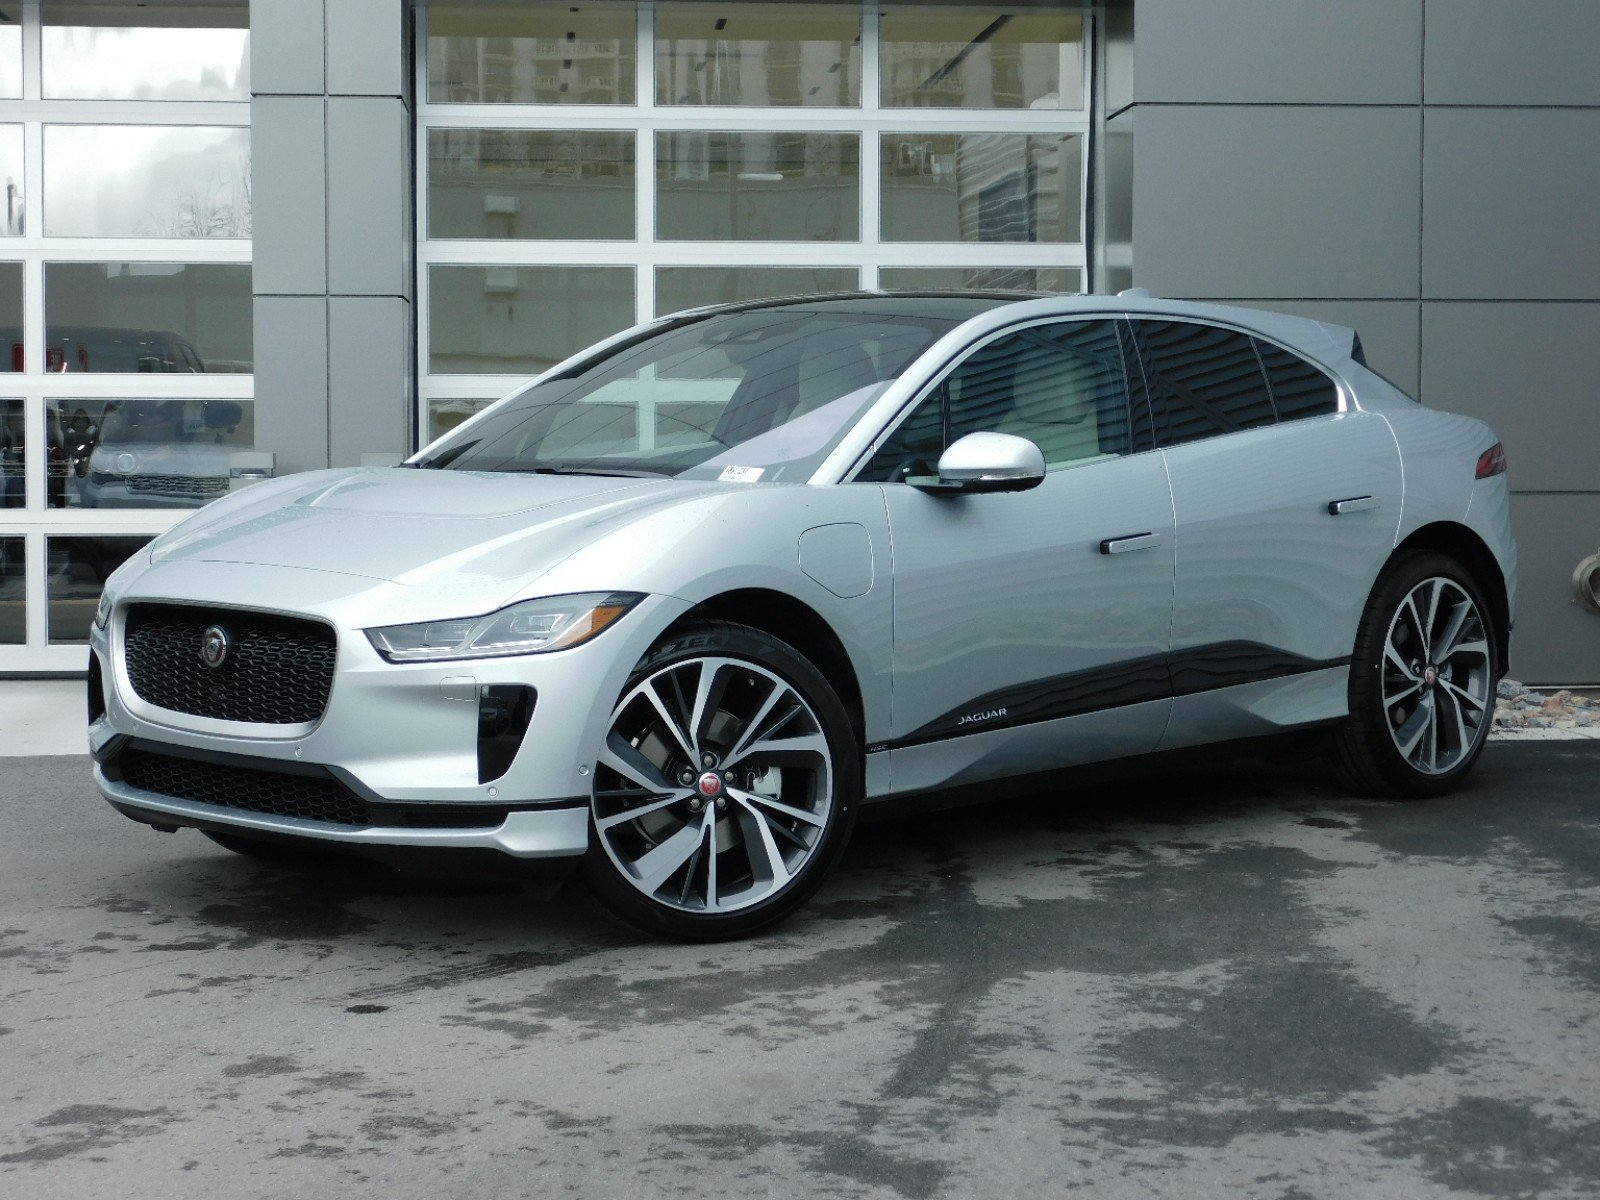 New 2019 Jaguar I Pace Wagon 4 Door Sport Utility 1j9041 Ken